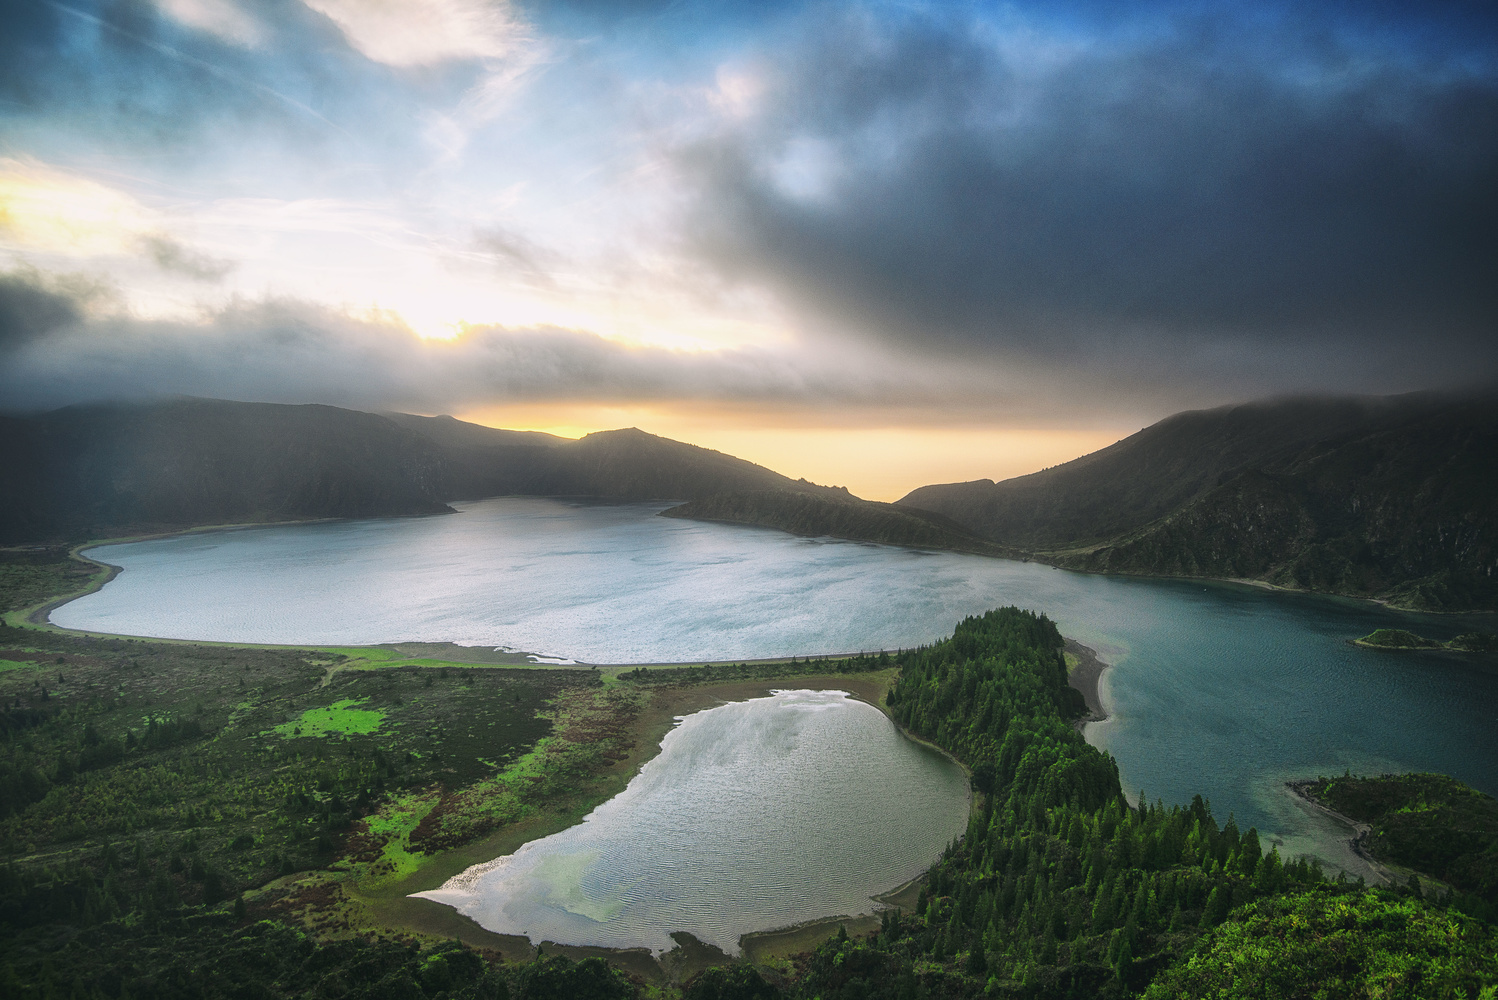 The Crater by Wix Mo